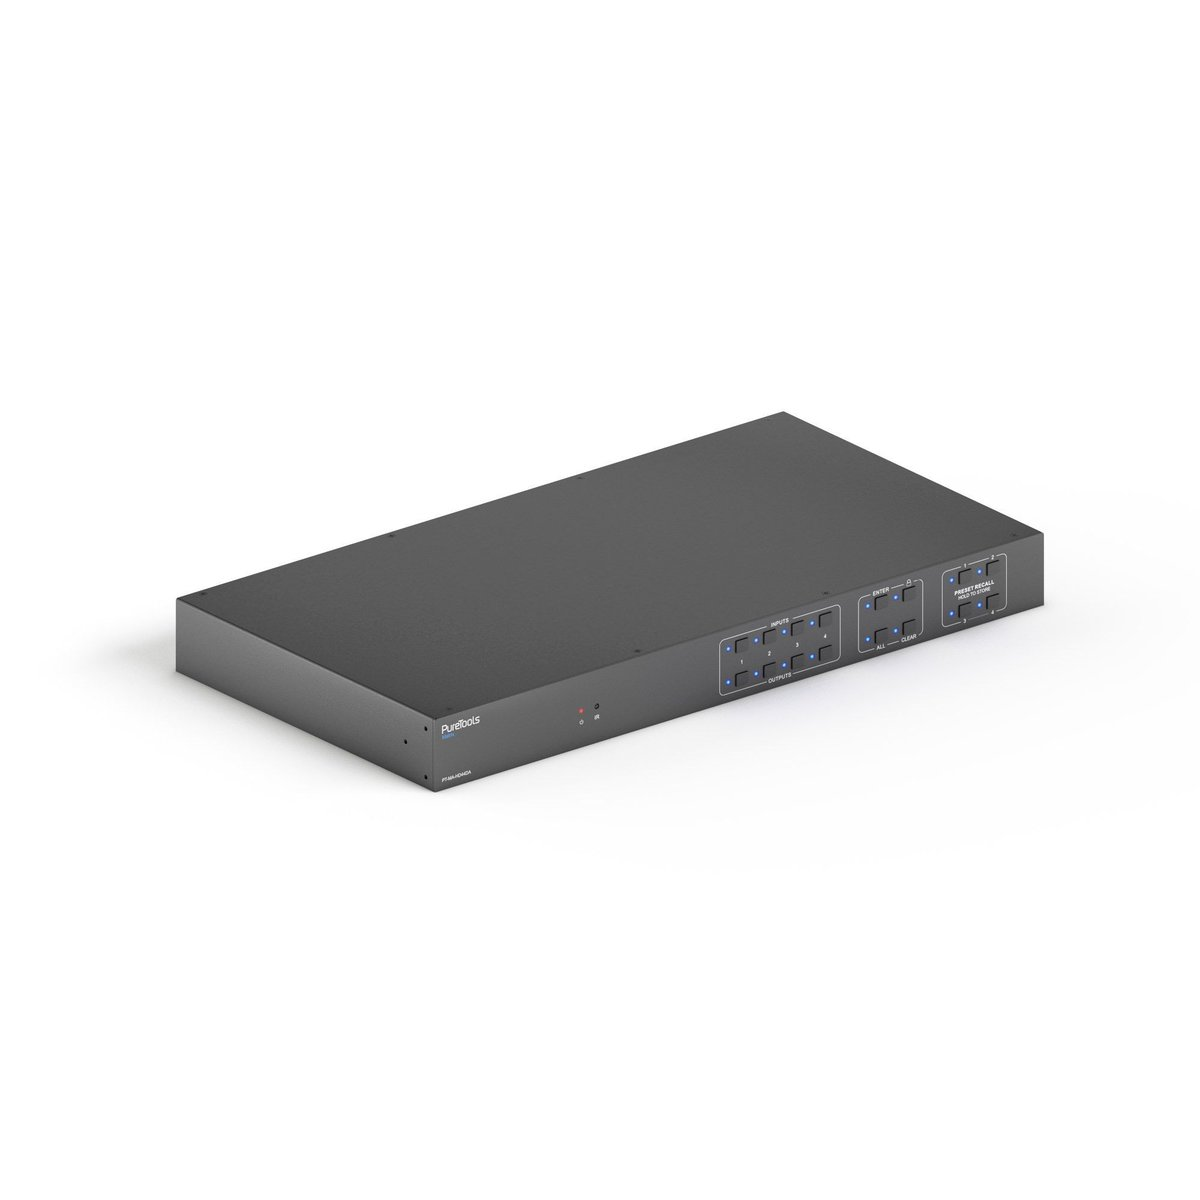 Available HDMI Matrix Switcher 4x4 4K 18Gbps. Supports resolutions up to UltraHD 4K 60Hz, Also has individual volume adjustment on each analog output plus other amazing features here https://buff.ly/2RaM1cf  #AVsolutions #HDMIMatrixSwitcher #purelink pic.twitter.com/754JiVwEXS